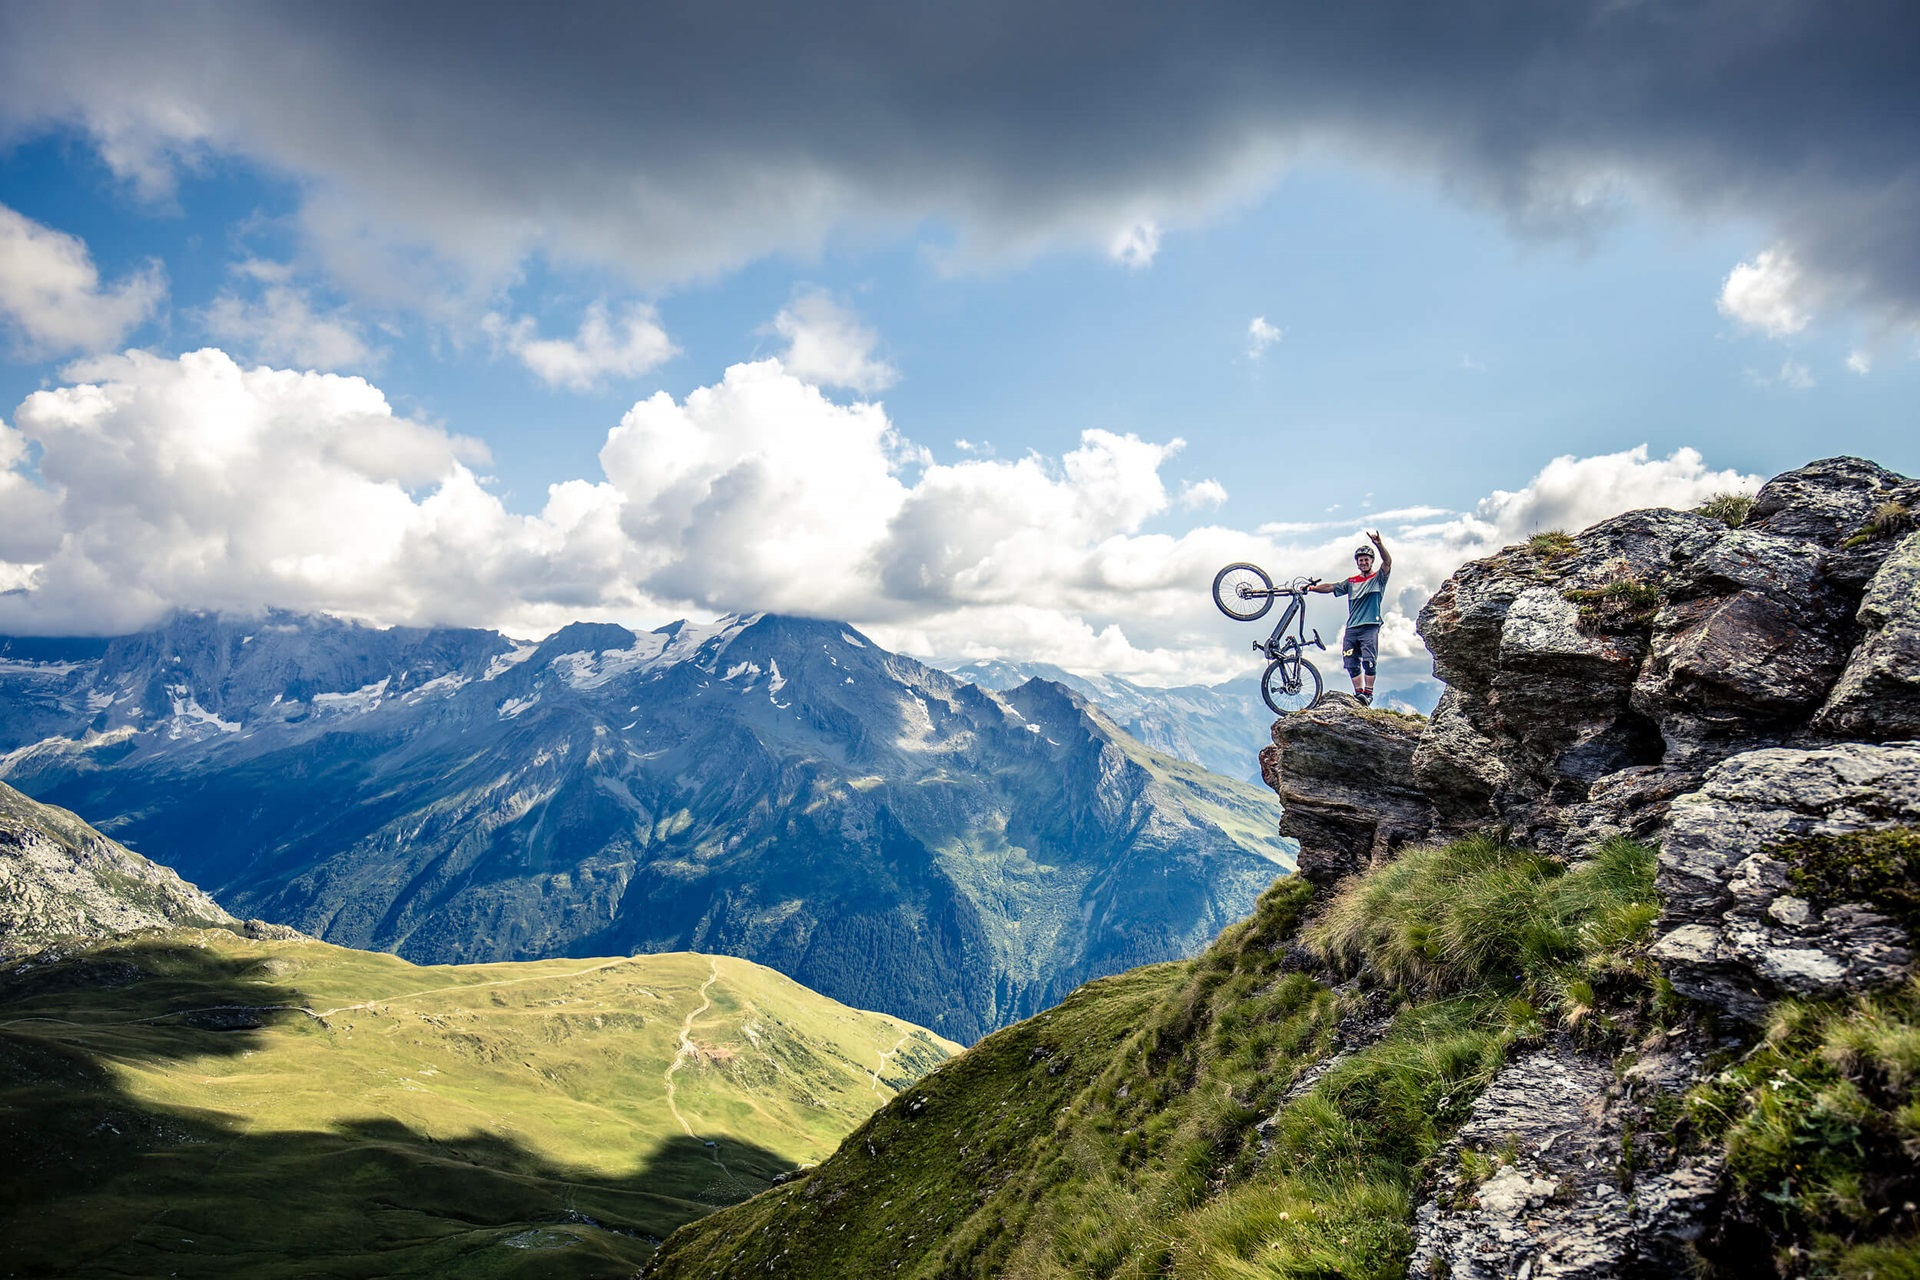 Haibike Hero Sam Pilgrim in La Plange on a mountain